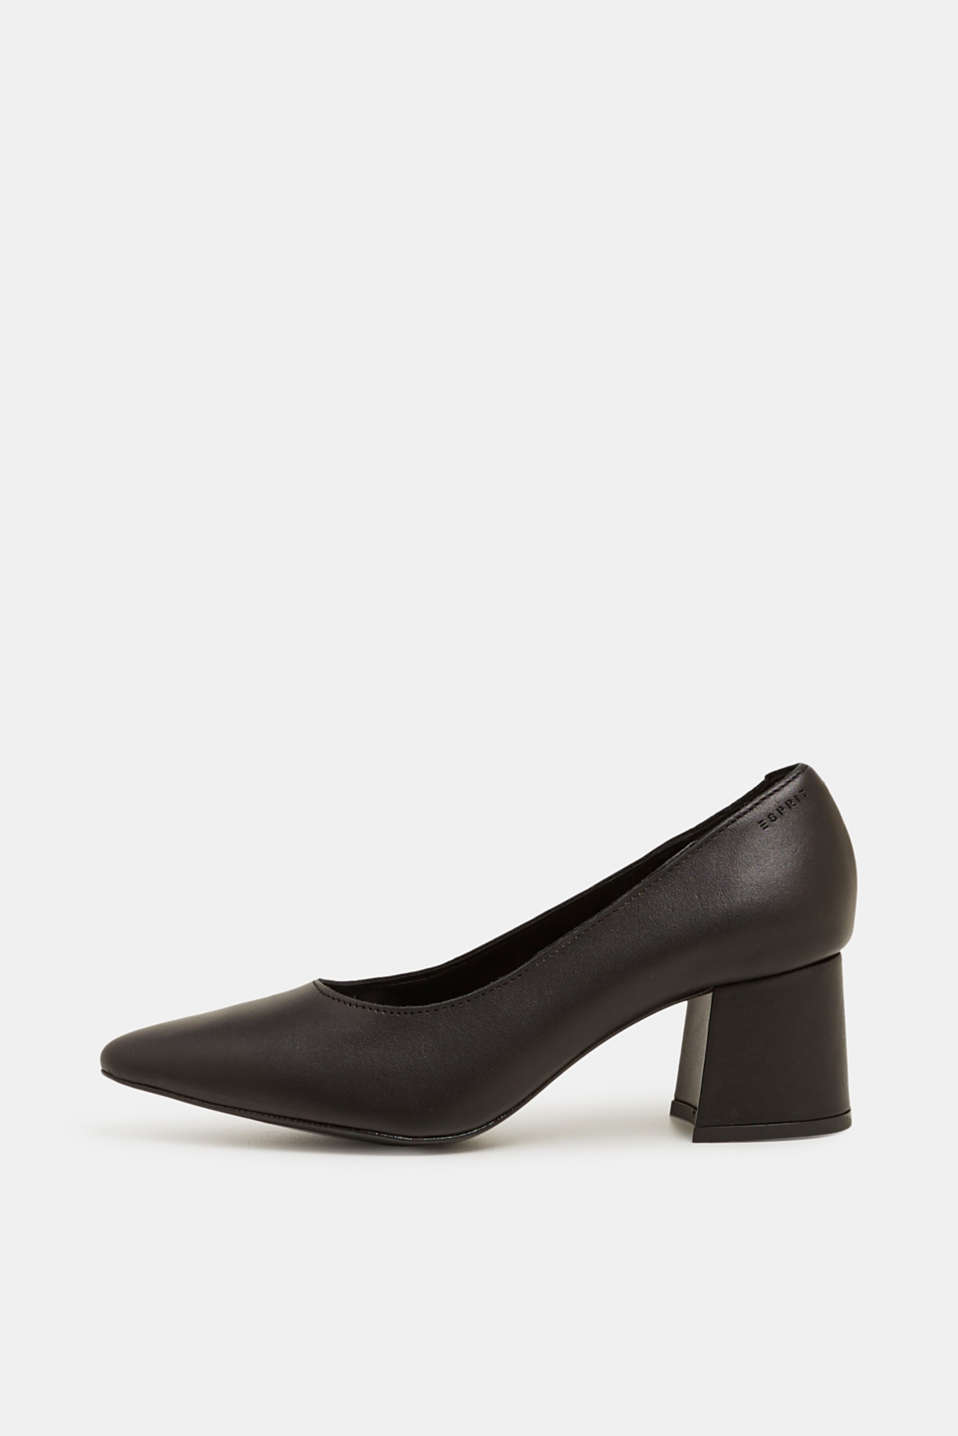 Esprit - Court shoe with block heel, made of leather